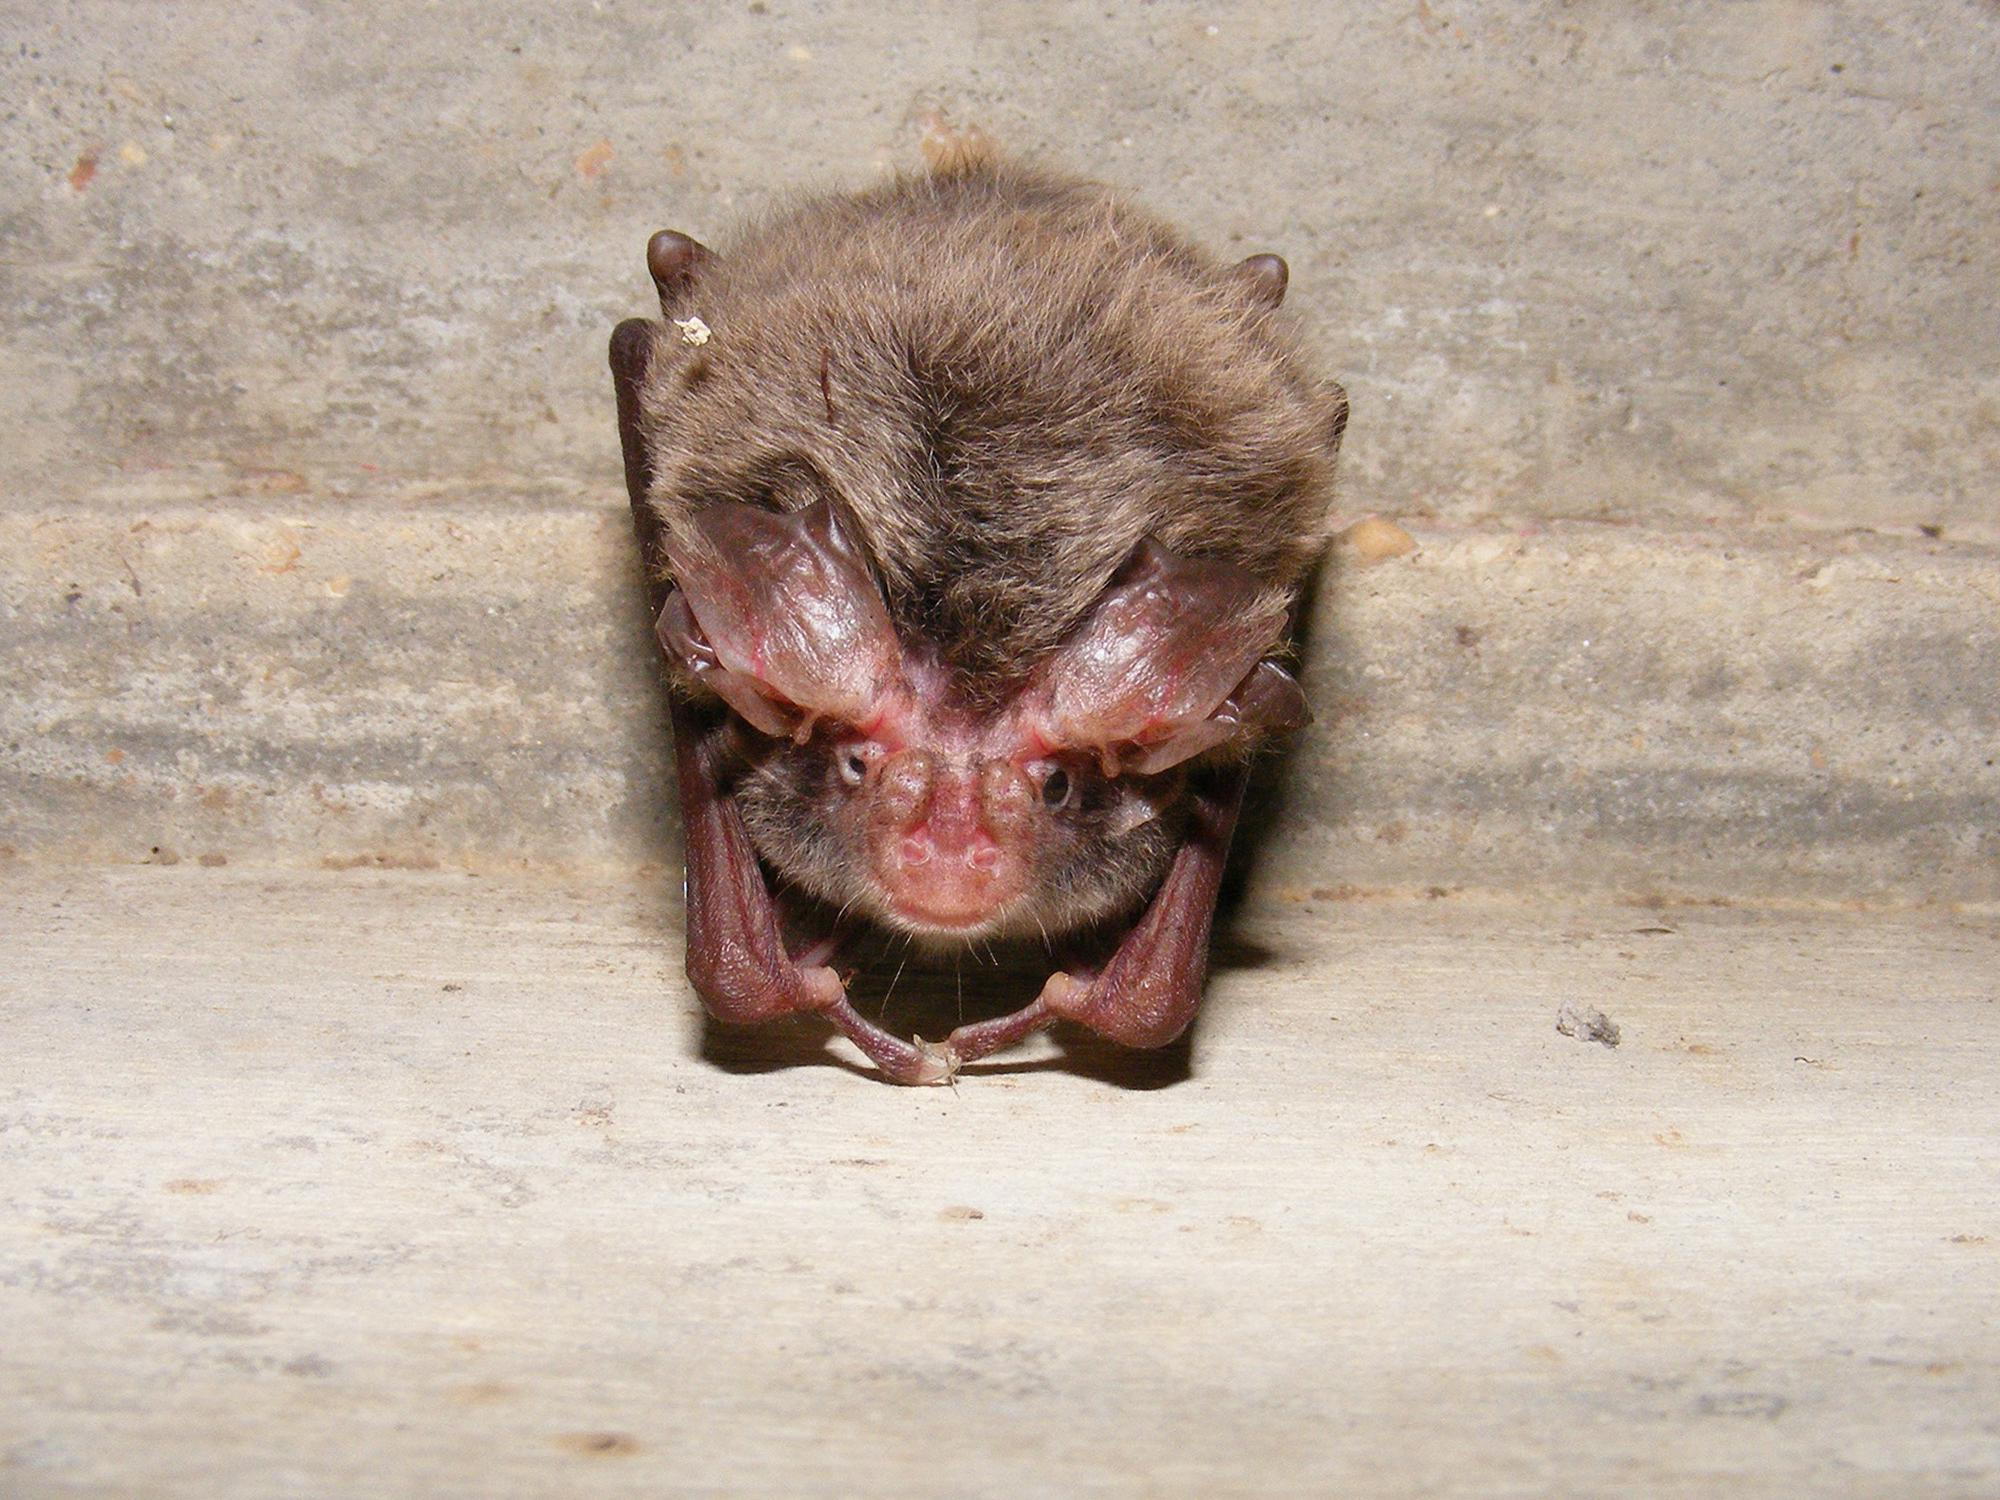 A small brown bat looks into the camera as it hangs upside down.